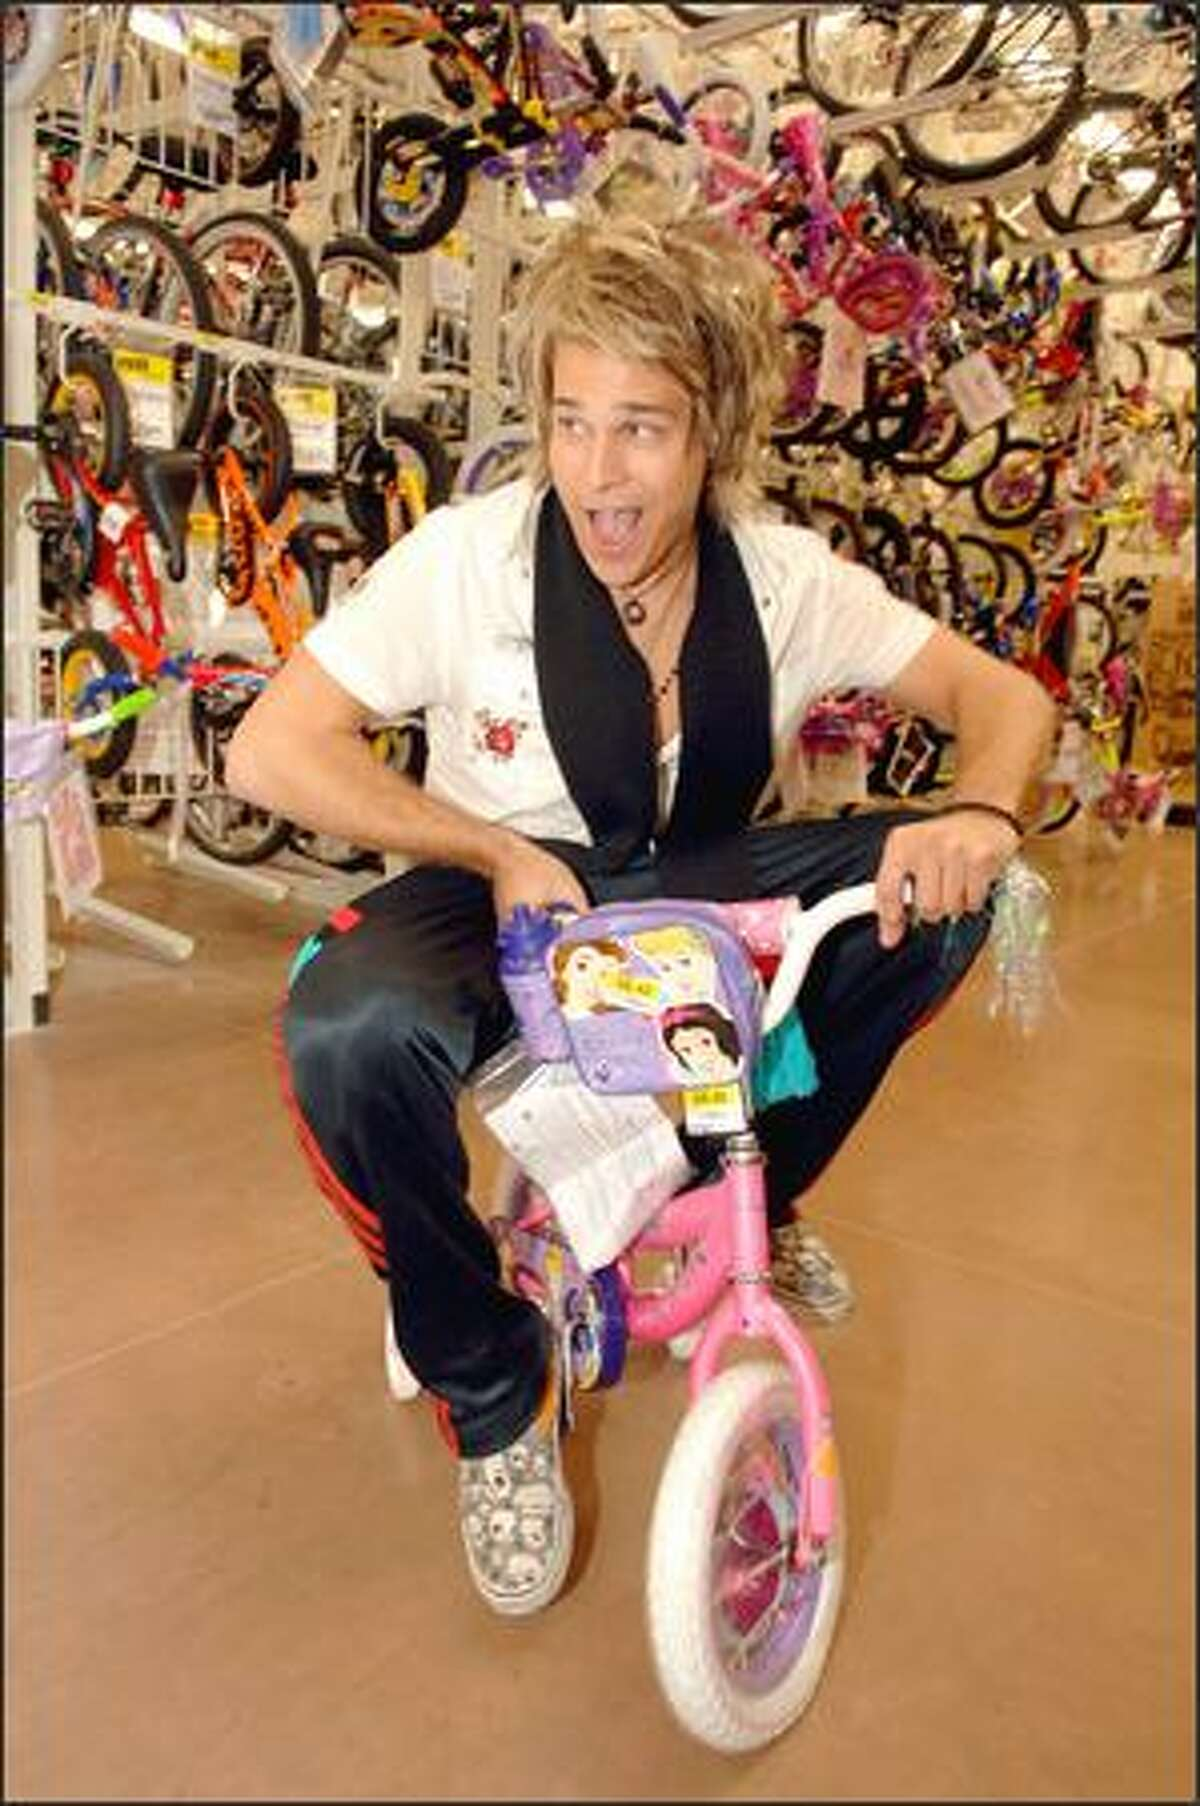 Attention Wal-Mart shoppers: Ryan Cabrera, a pop star of that not-quite-distinctive-but-resembling-Dave-Matthews-and-Goo-GooDolls quality, plays around before he goes on stage to entertain at a celebration of the discount giant's 2,000th Supercenter in California.